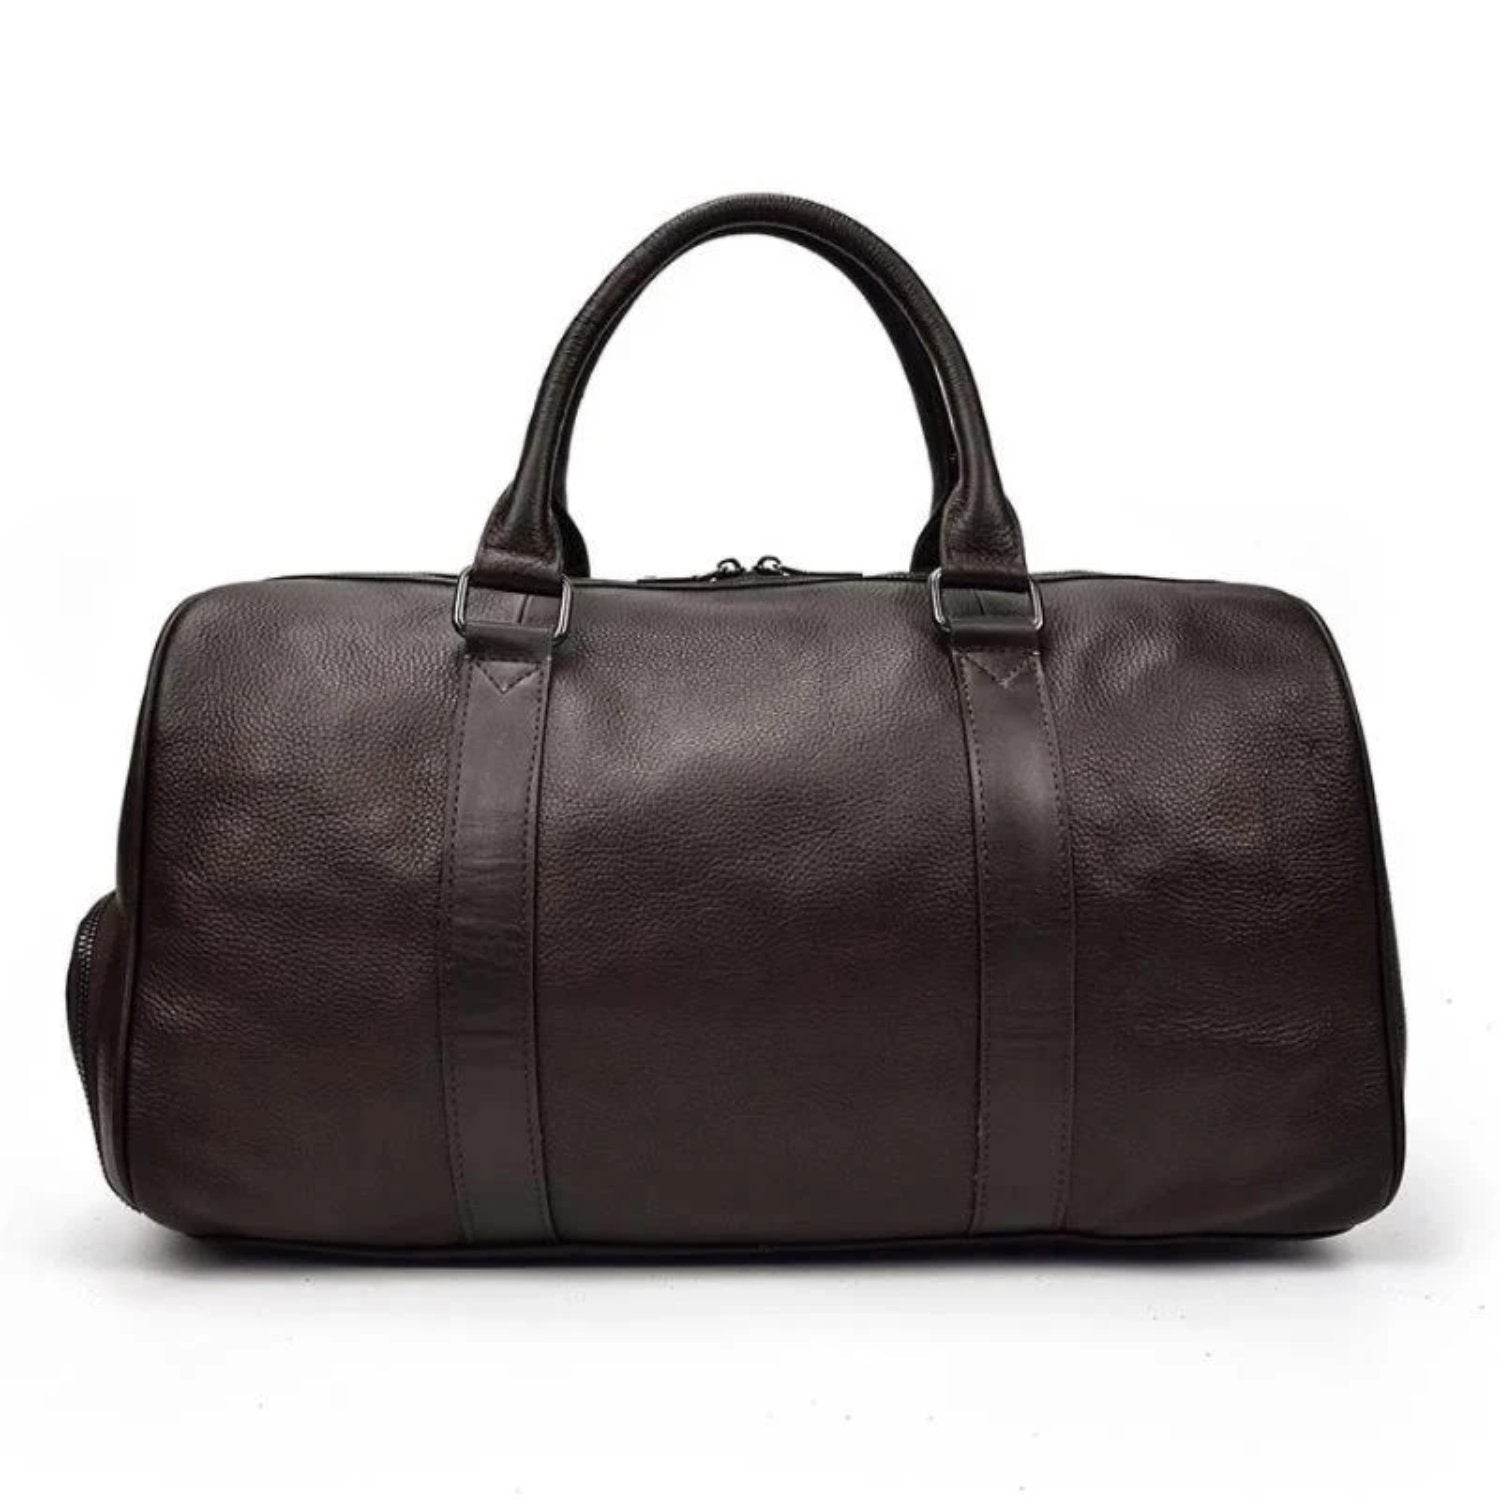 The Endre Weekender | Vintage Leather Duffle Bag - STEEL HORSE LEATHER, Handmade, Genuine Vintage Leather